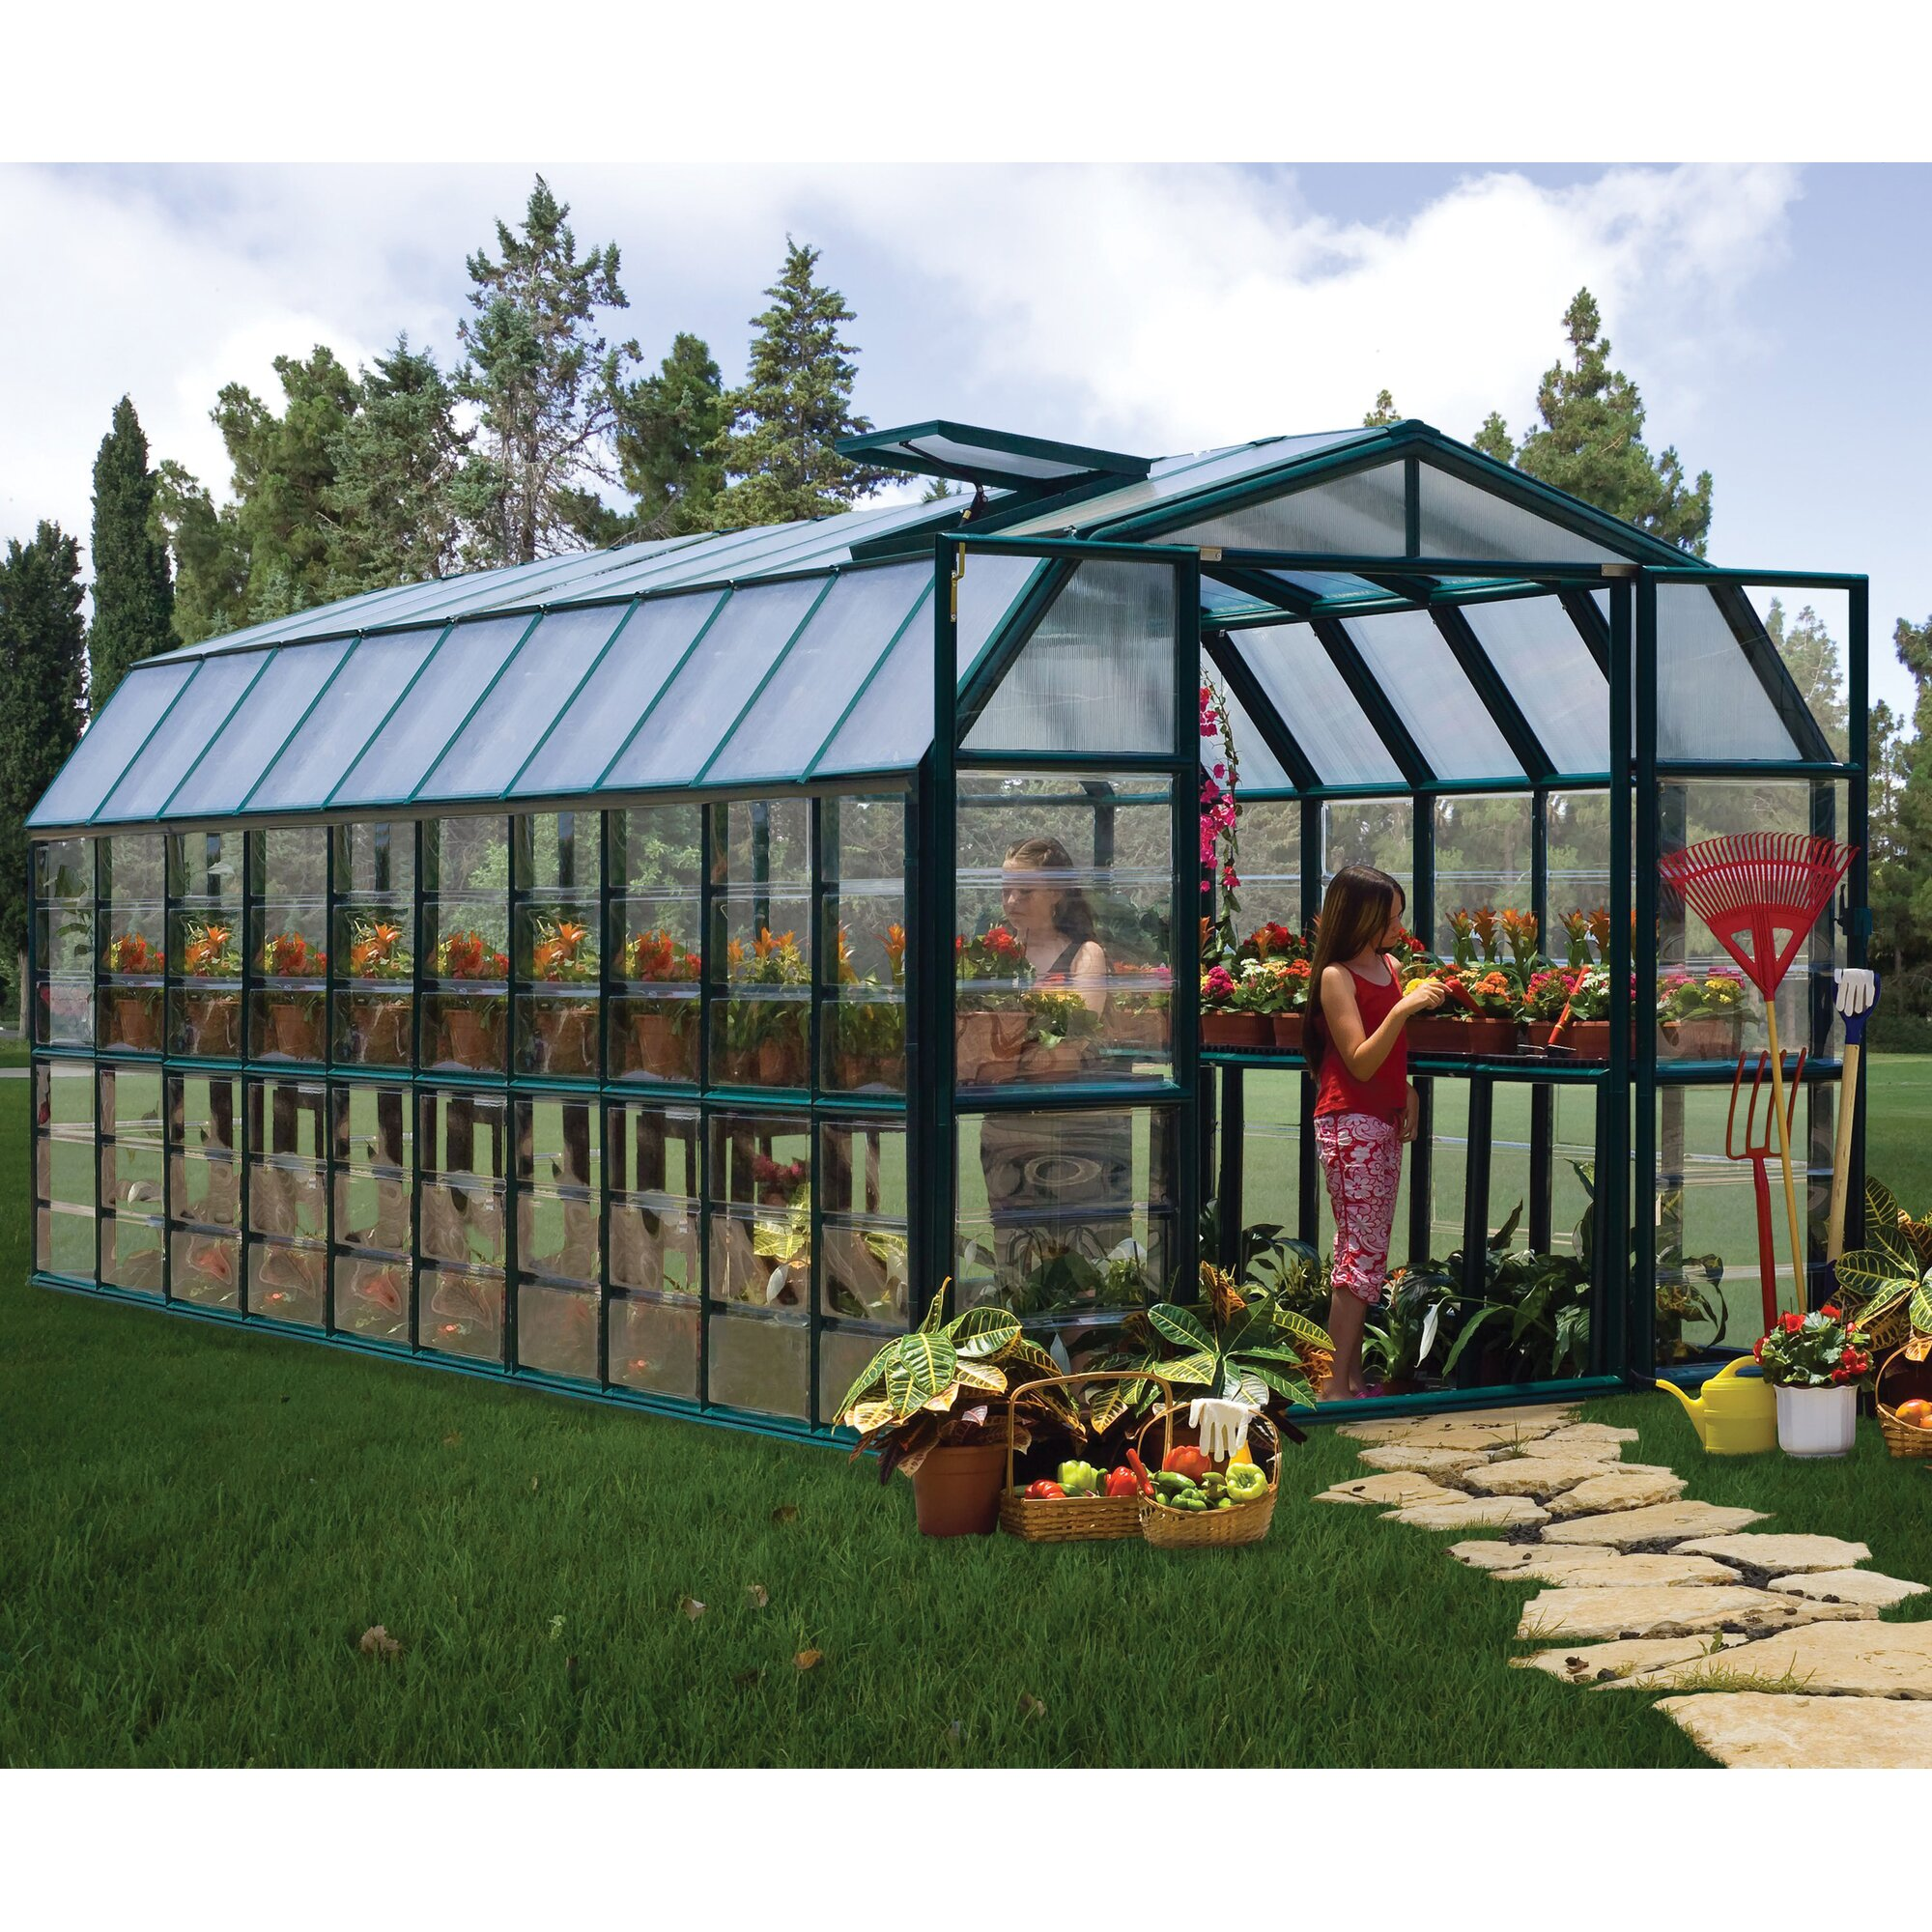 Grand Gardener 2 Clear 8 Ft W X 20 Ft D Greenhouse